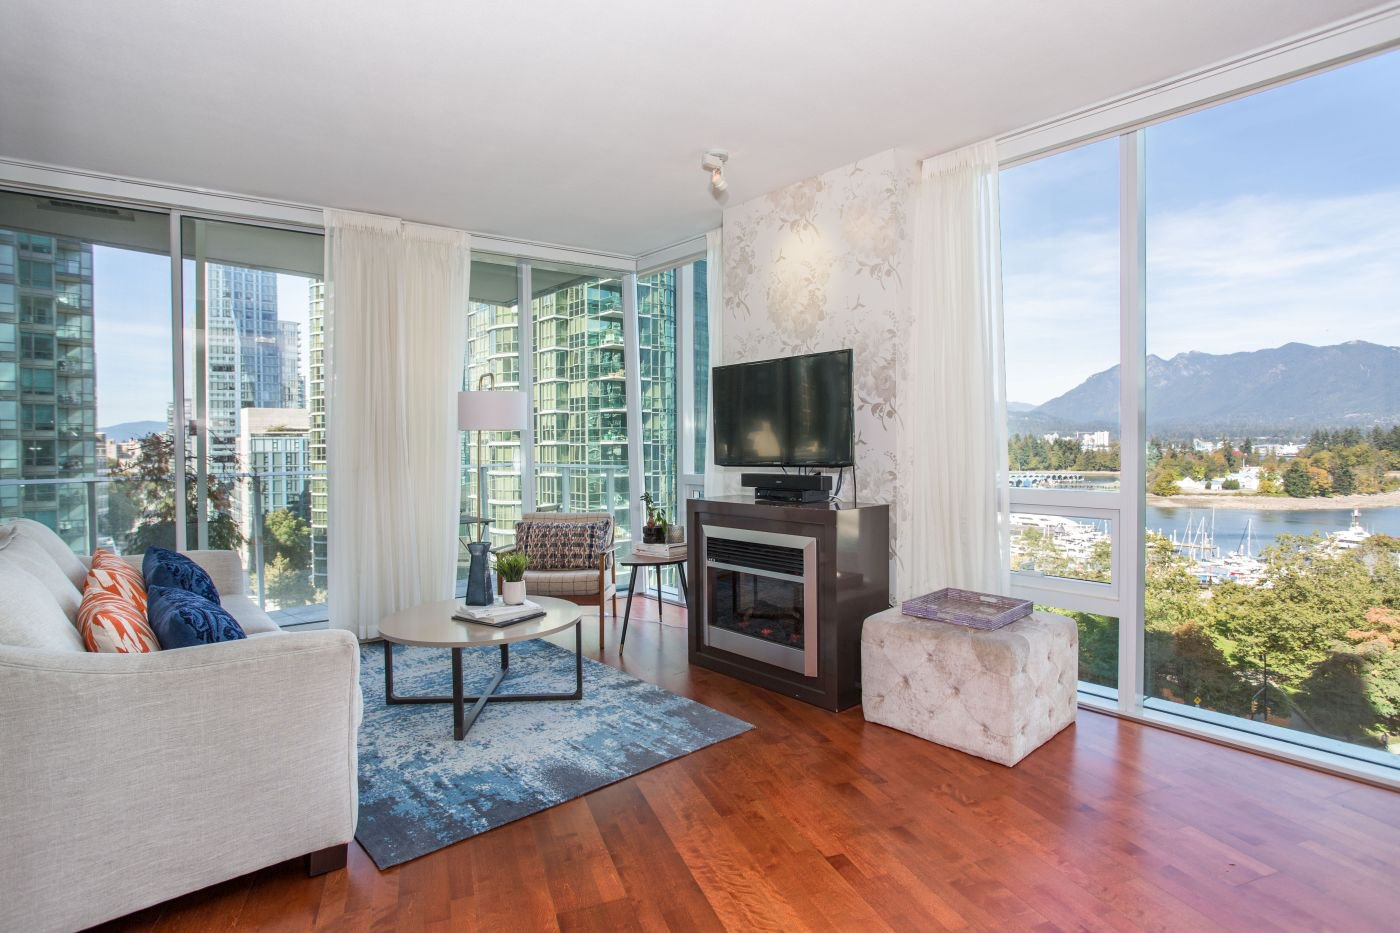 Main Photo: 1001 1227 MELVILLE Street in Vancouver: Coal Harbour Condo for sale (Vancouver West)